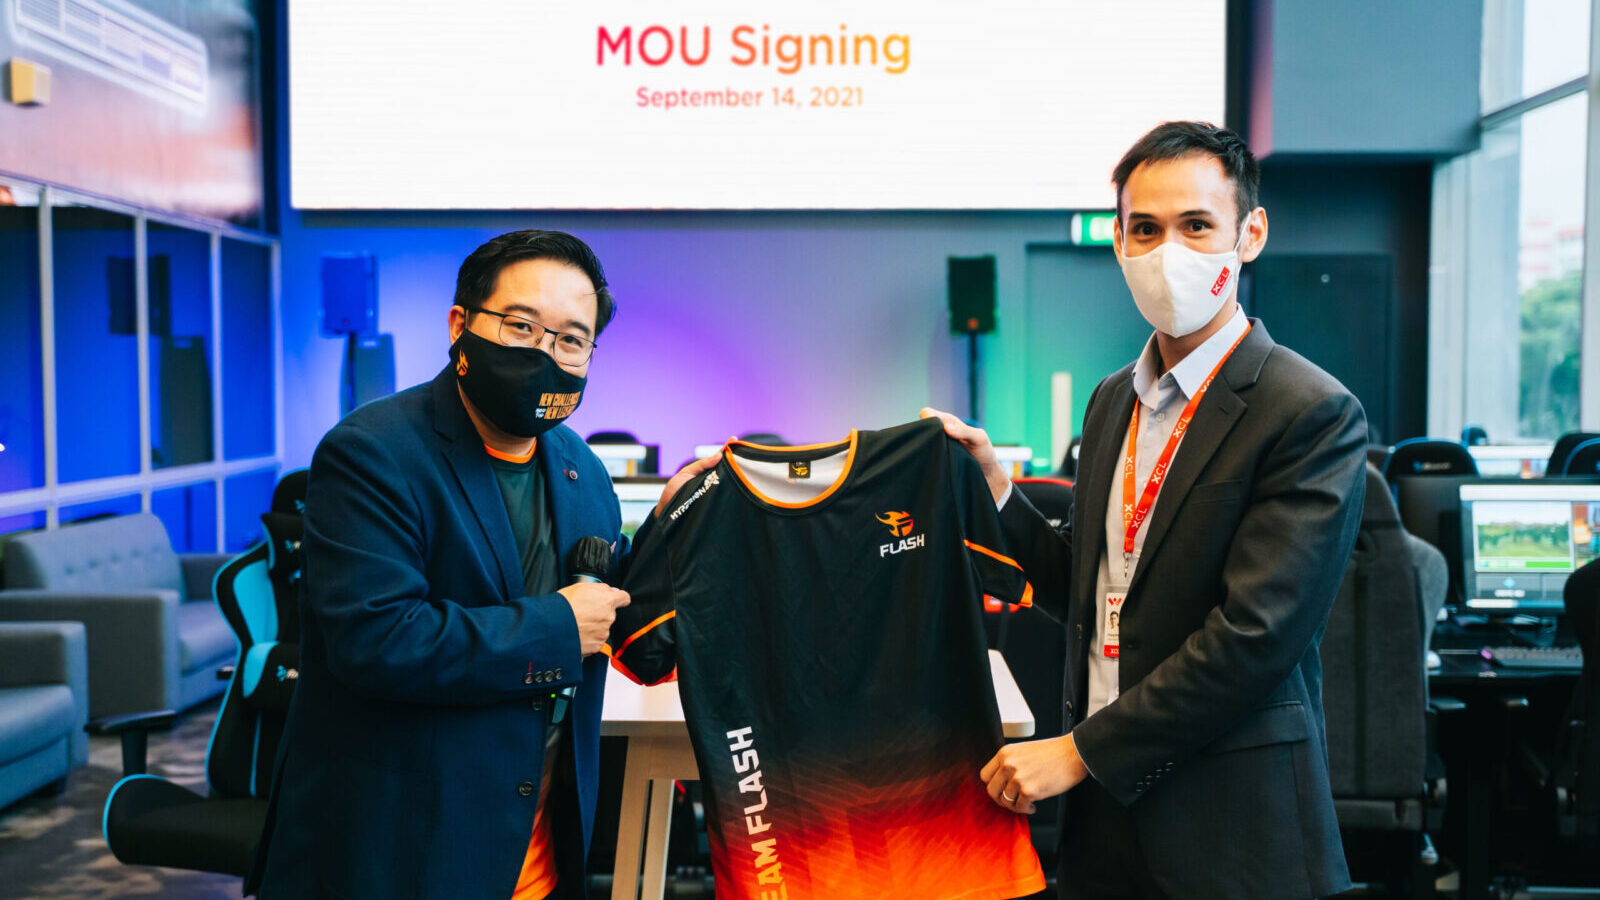 XCL Education and Team Flash sign Landmark Agreement